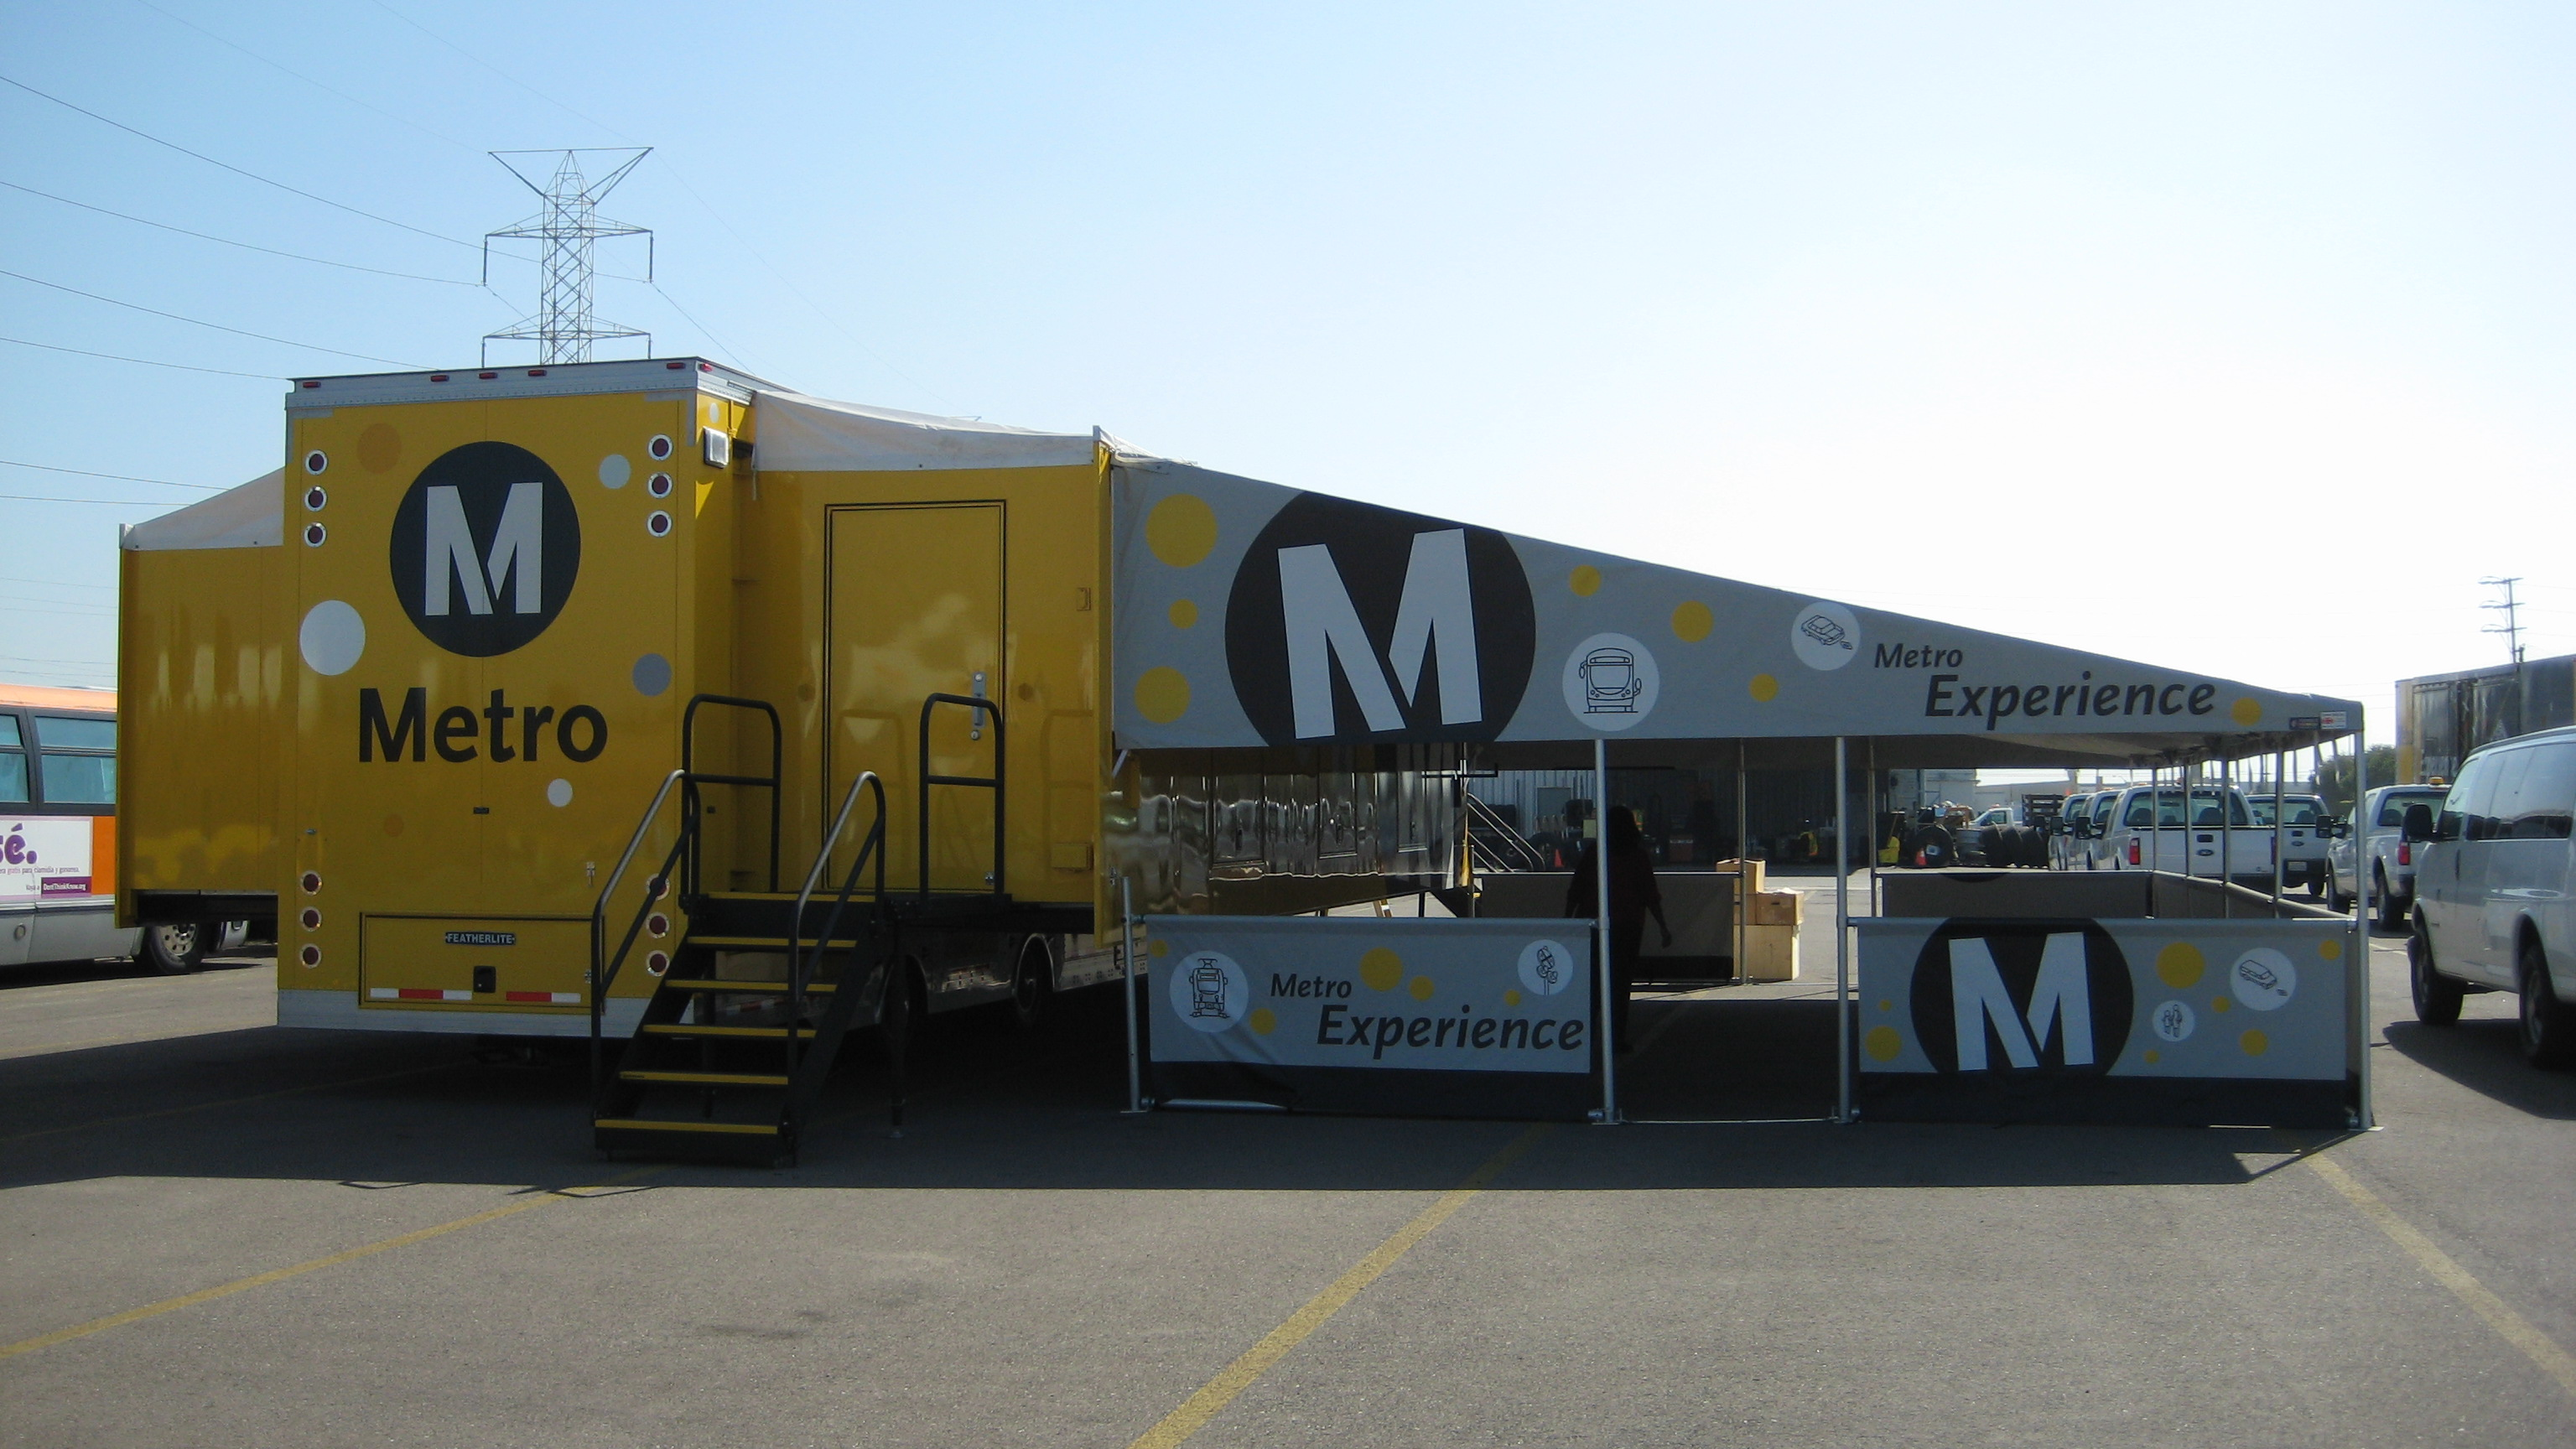 The Metro Experience, a mobile theatre, will be screening community videos.